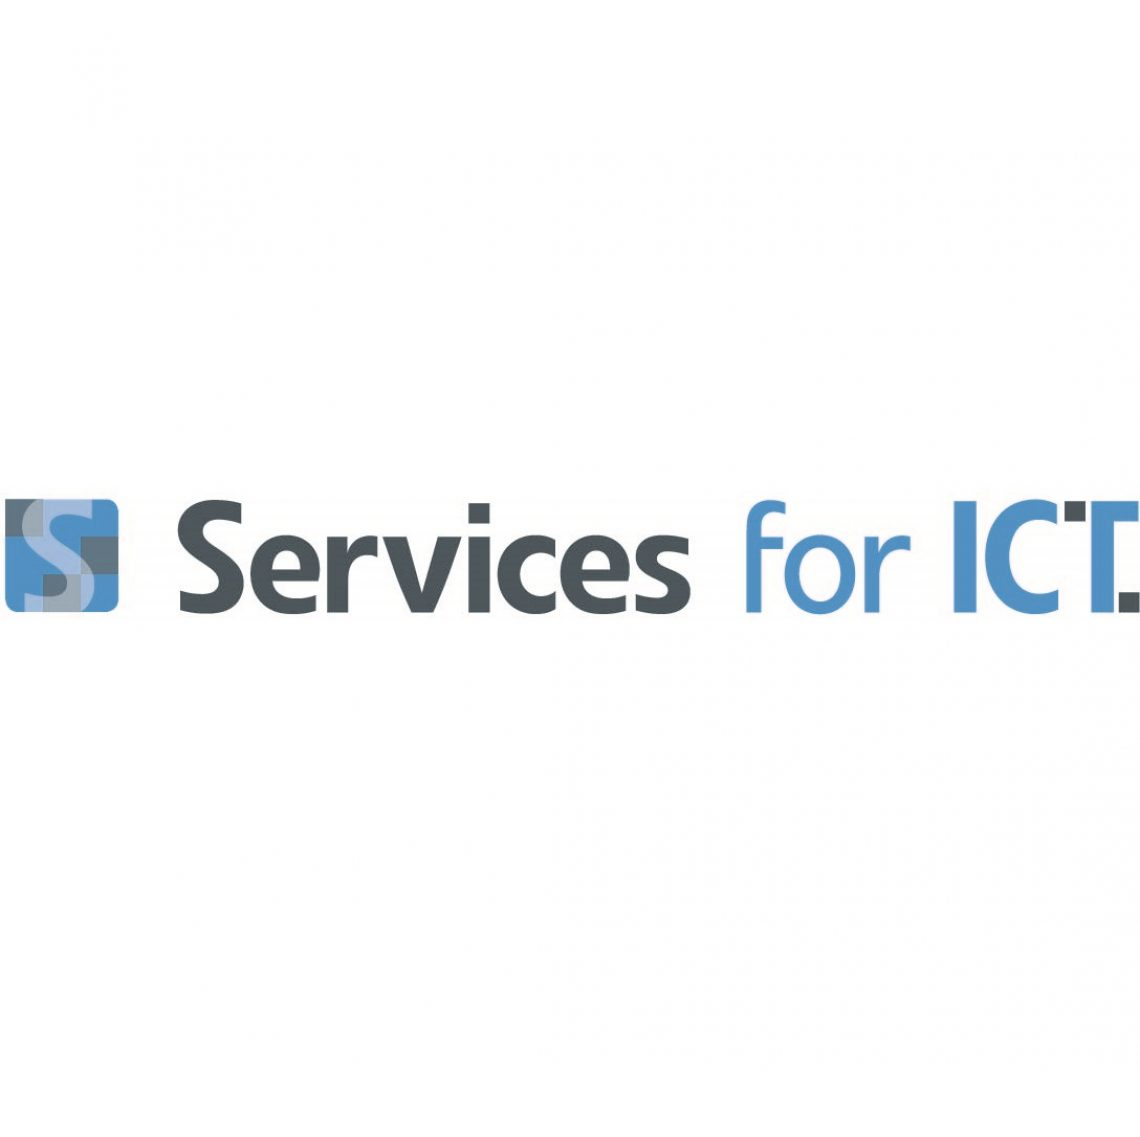 Services for ICT